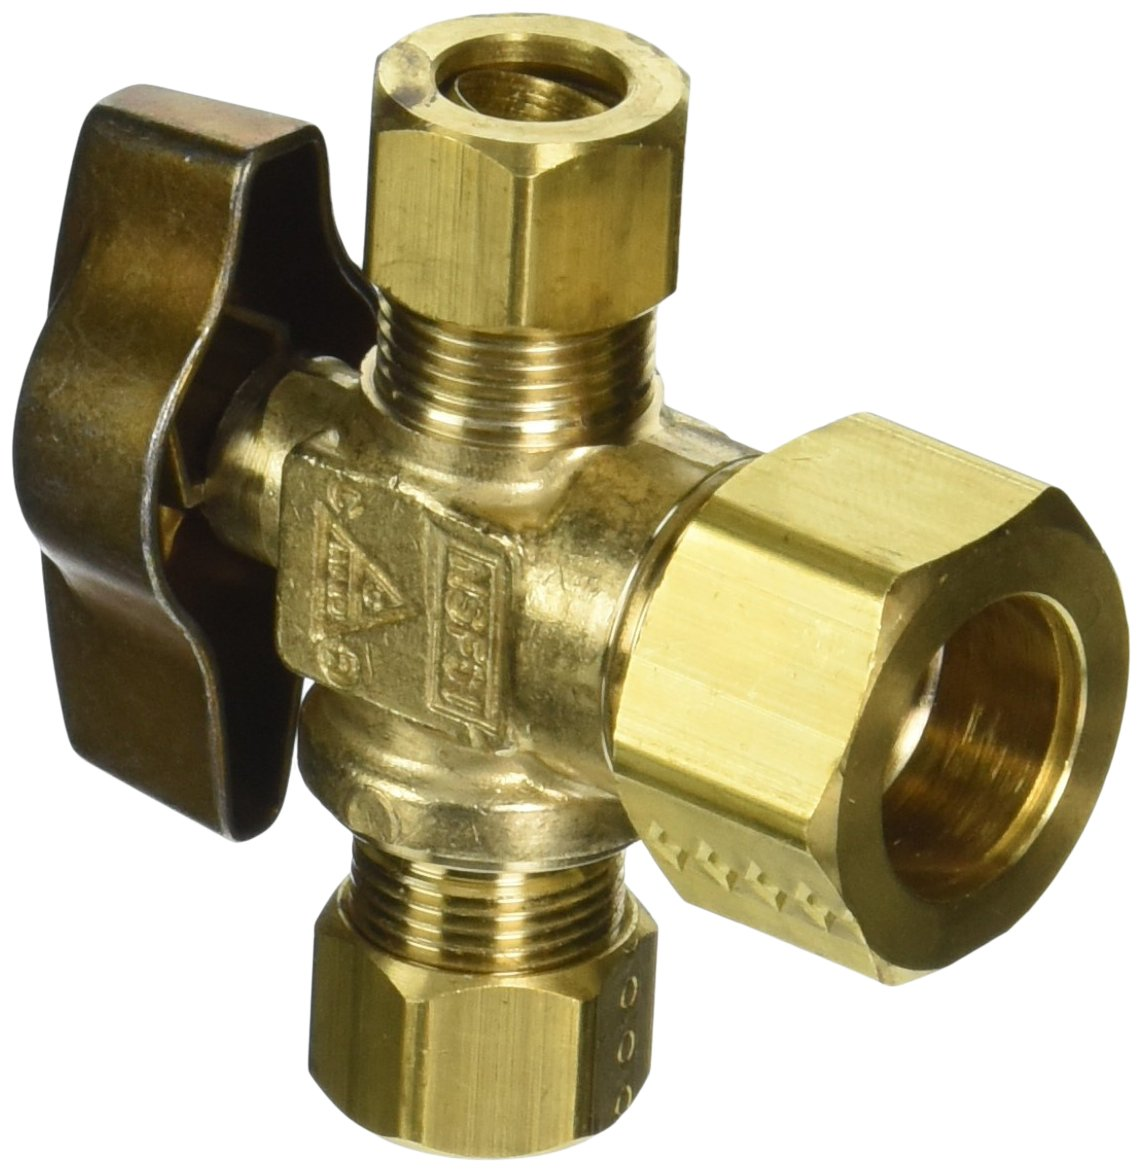 BrassCraft KTCR1901X R1 1/2'' Nominal Compression Inlet x 3/8'' O.D Compression x 3/8'' O.D Compression Dual Outlet 1/4-Turn Ball Valve